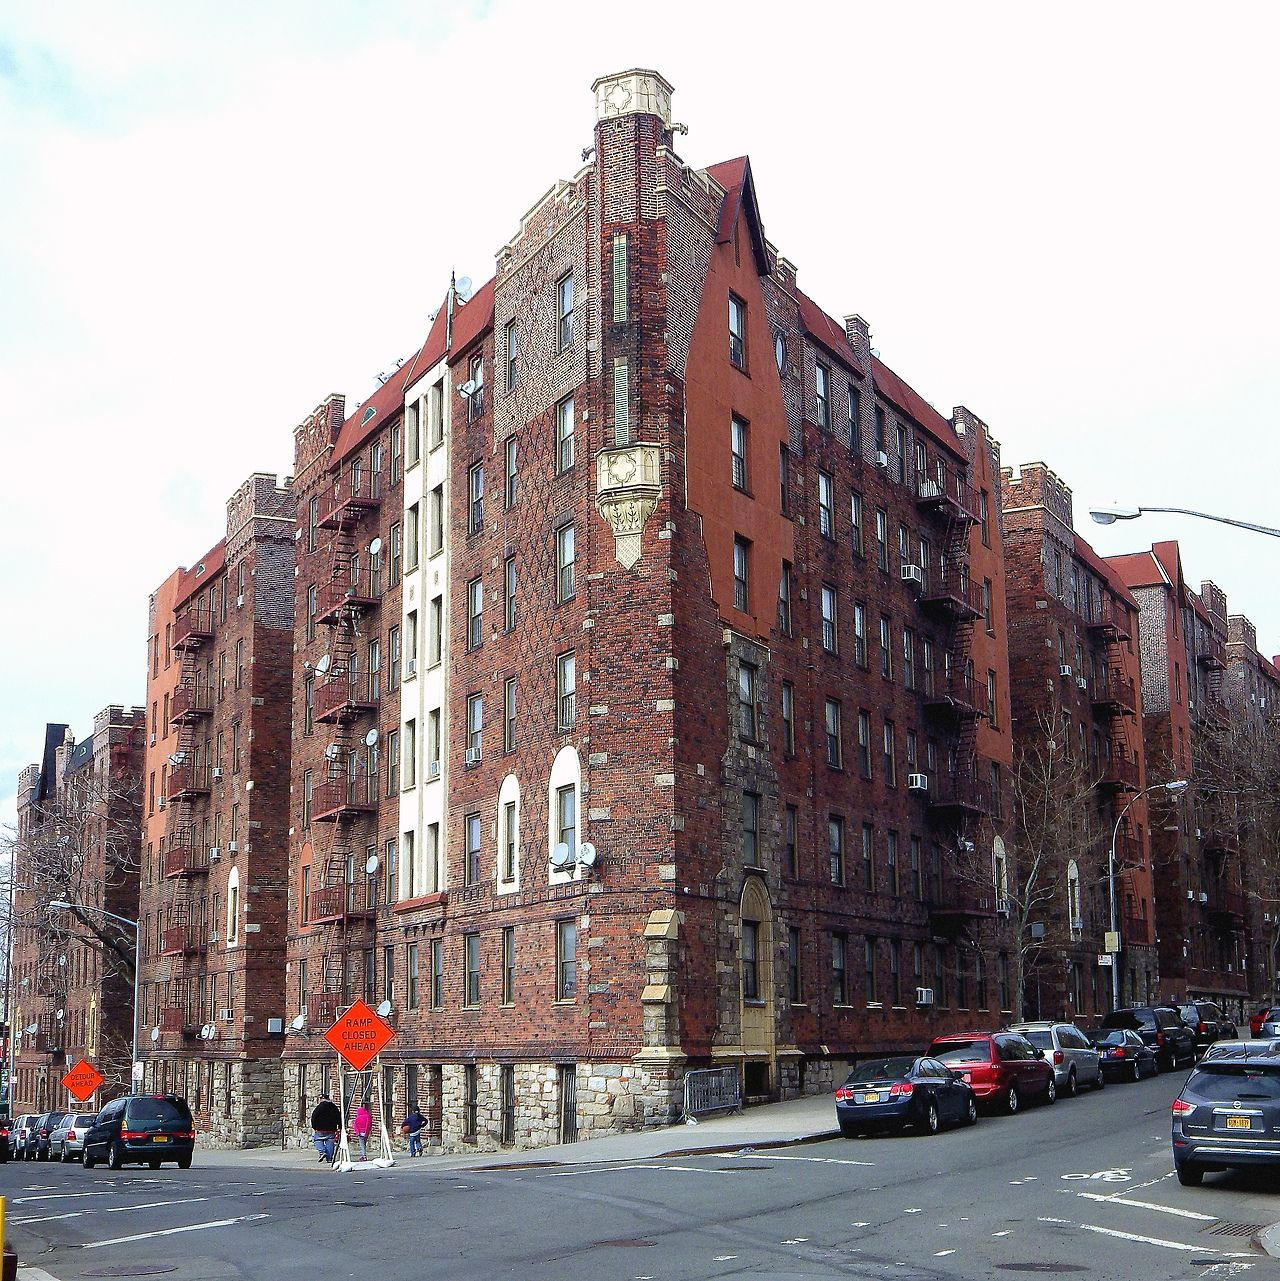 New York City Apartment Streets: An Apartment House In The Grand Concourse Historic